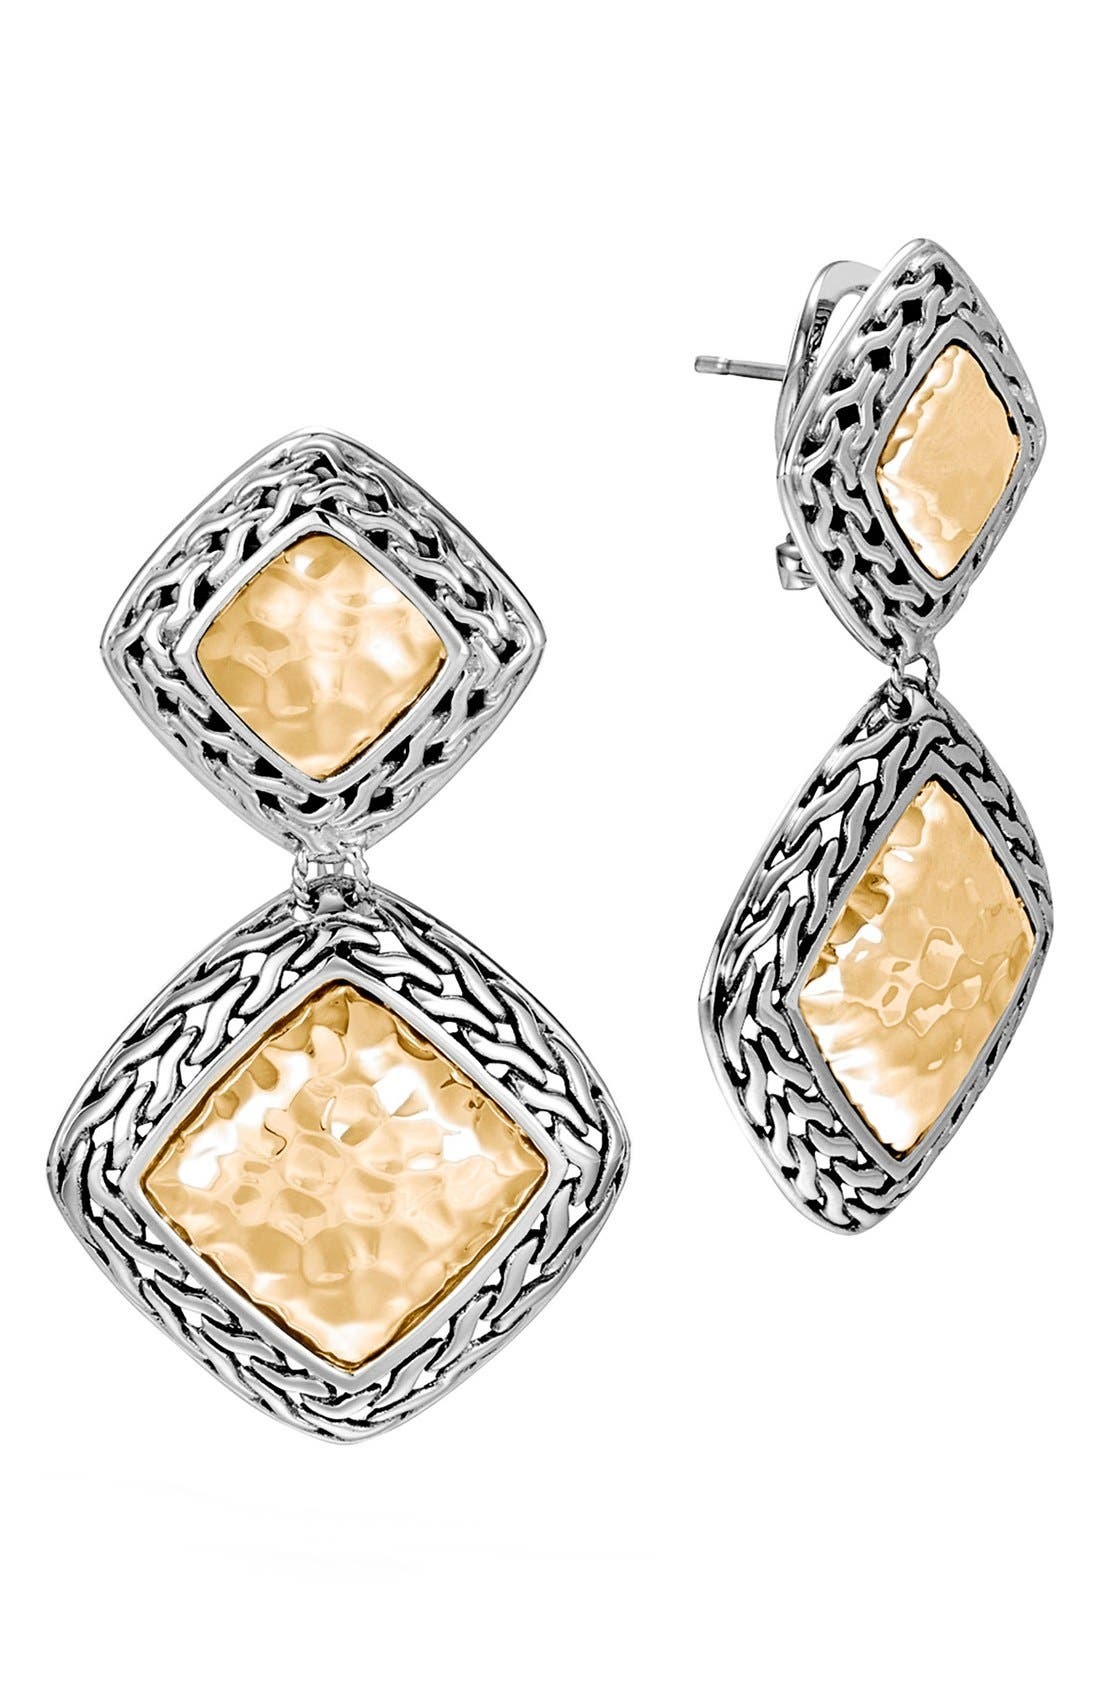 Heritage Drop Earrings,                             Main thumbnail 1, color,                             SILVER/ GOLD